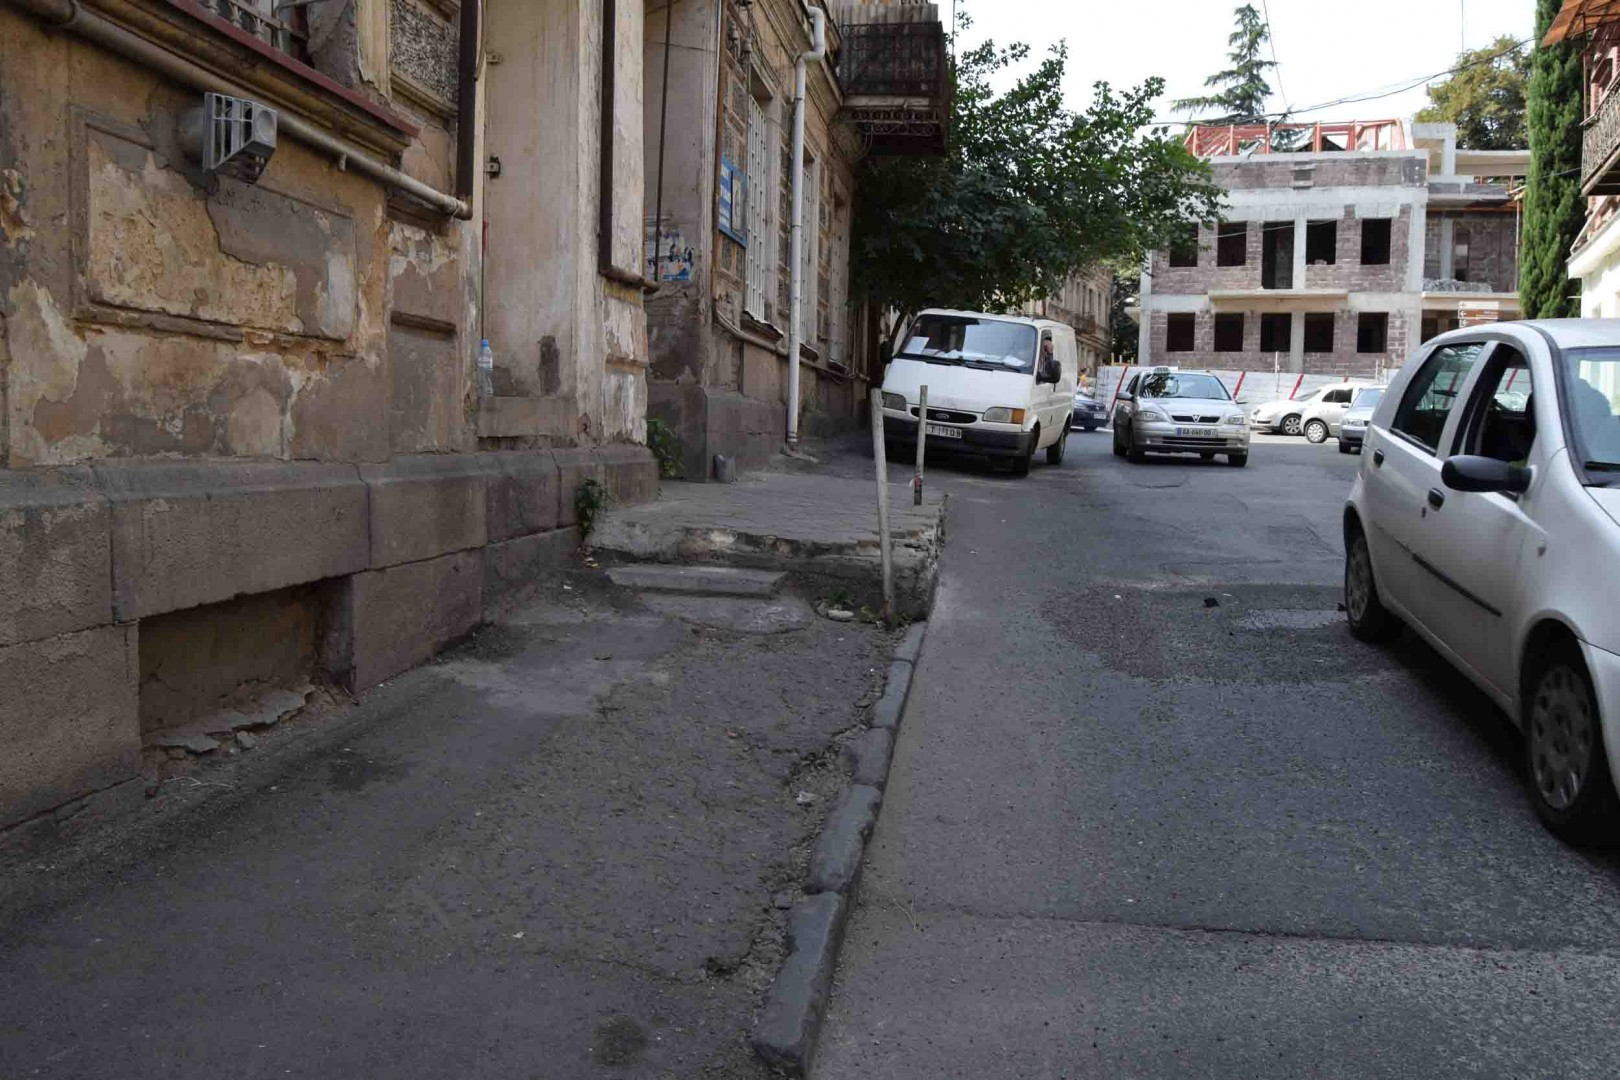 Sidewalk at Asatiani Street, Old Tbilisi.